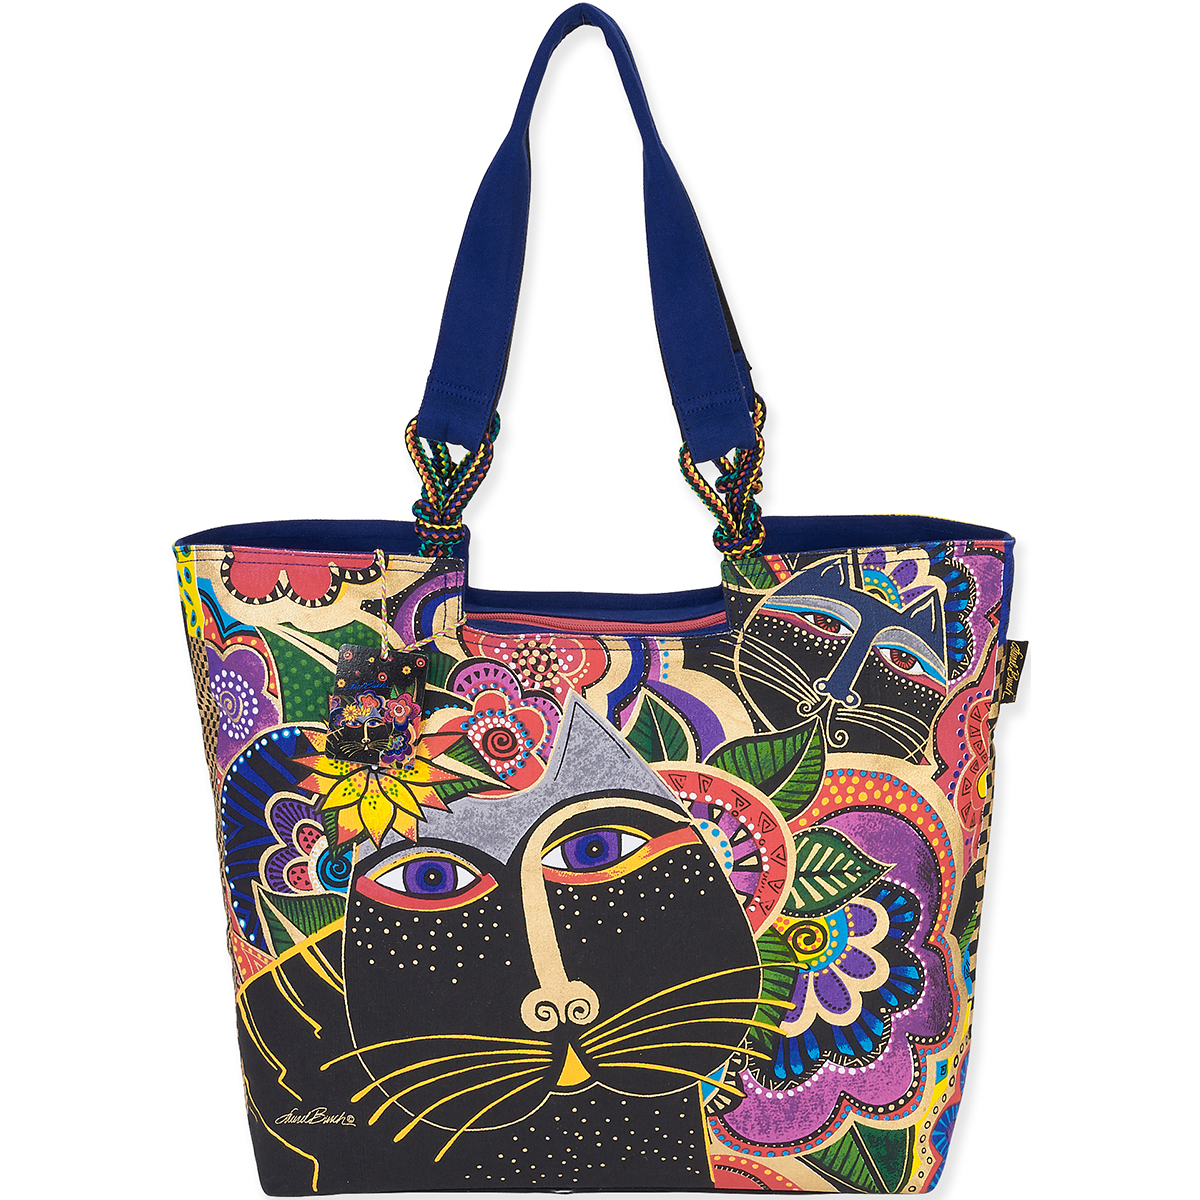 Laurel Burch Tote- Shoulder Tote 21\u0022X5\u0022X15\u0022 Carlotta\u0027s Cats